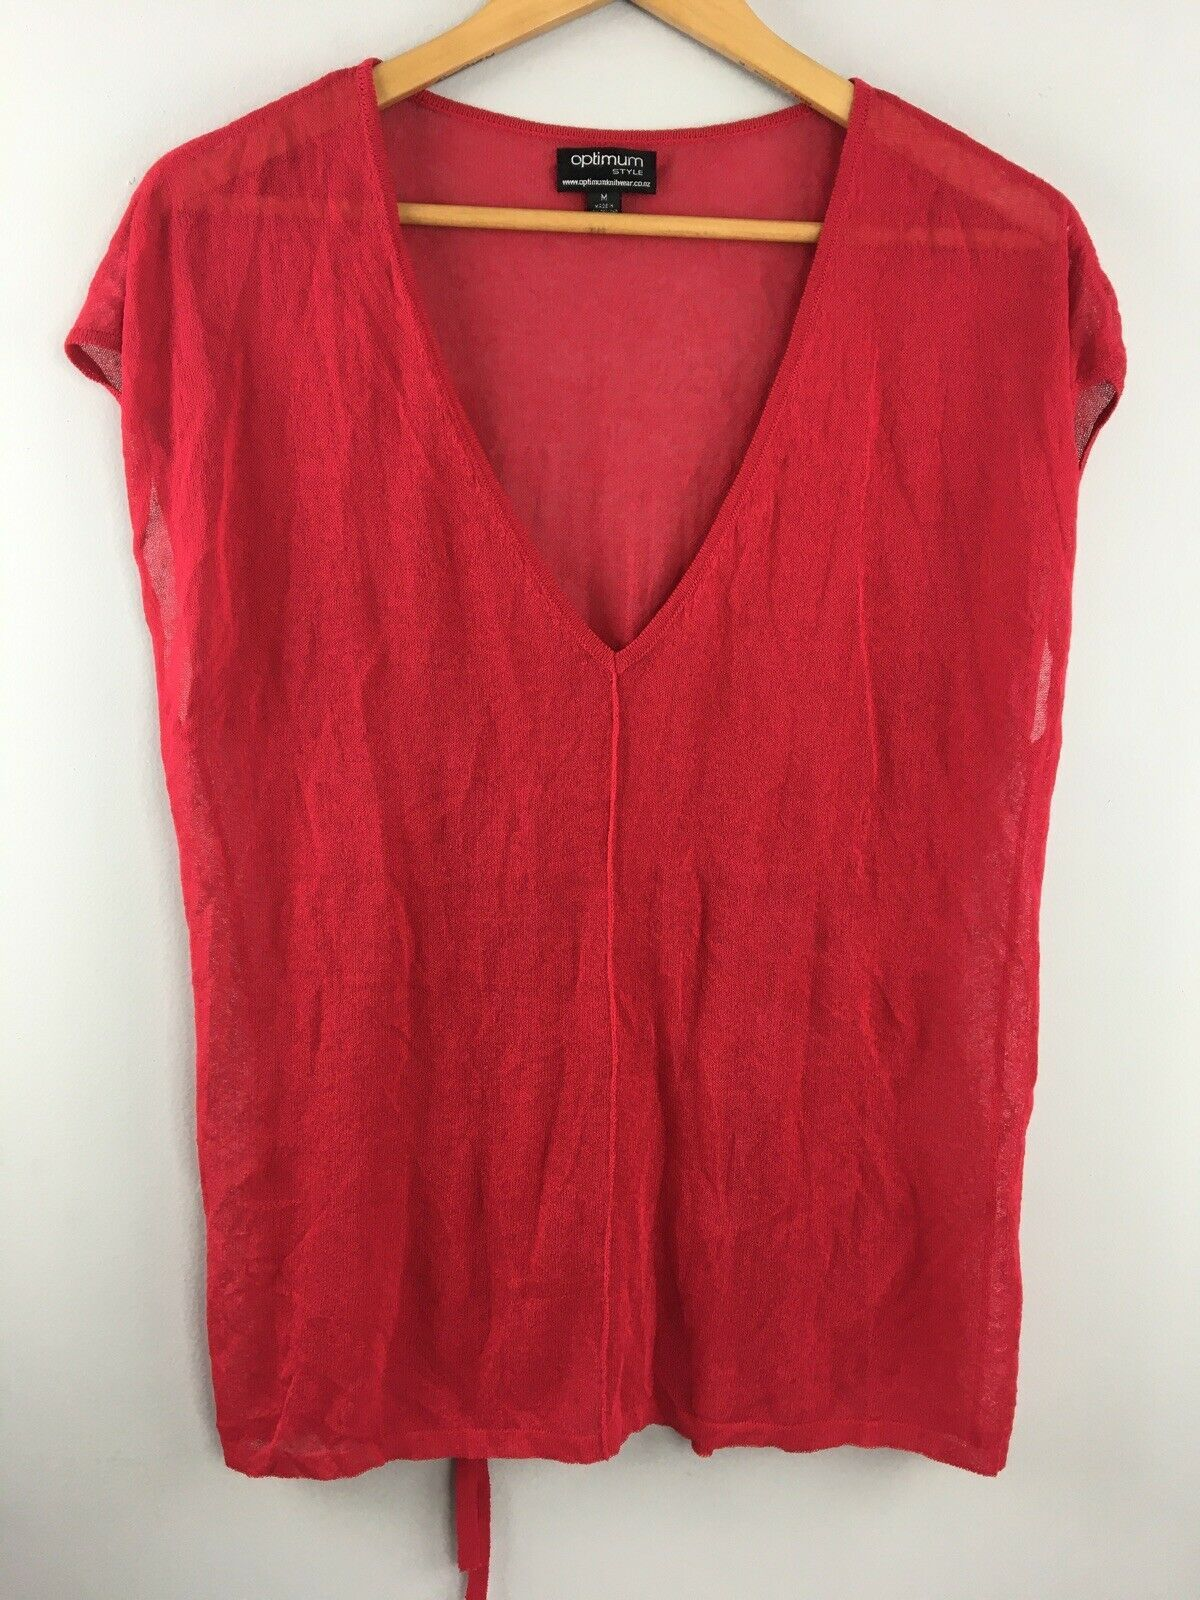 Primary image for Optimum Knitwear Top M Medium Red Sleeveless Shirt Merino Wool New Zealand KK54